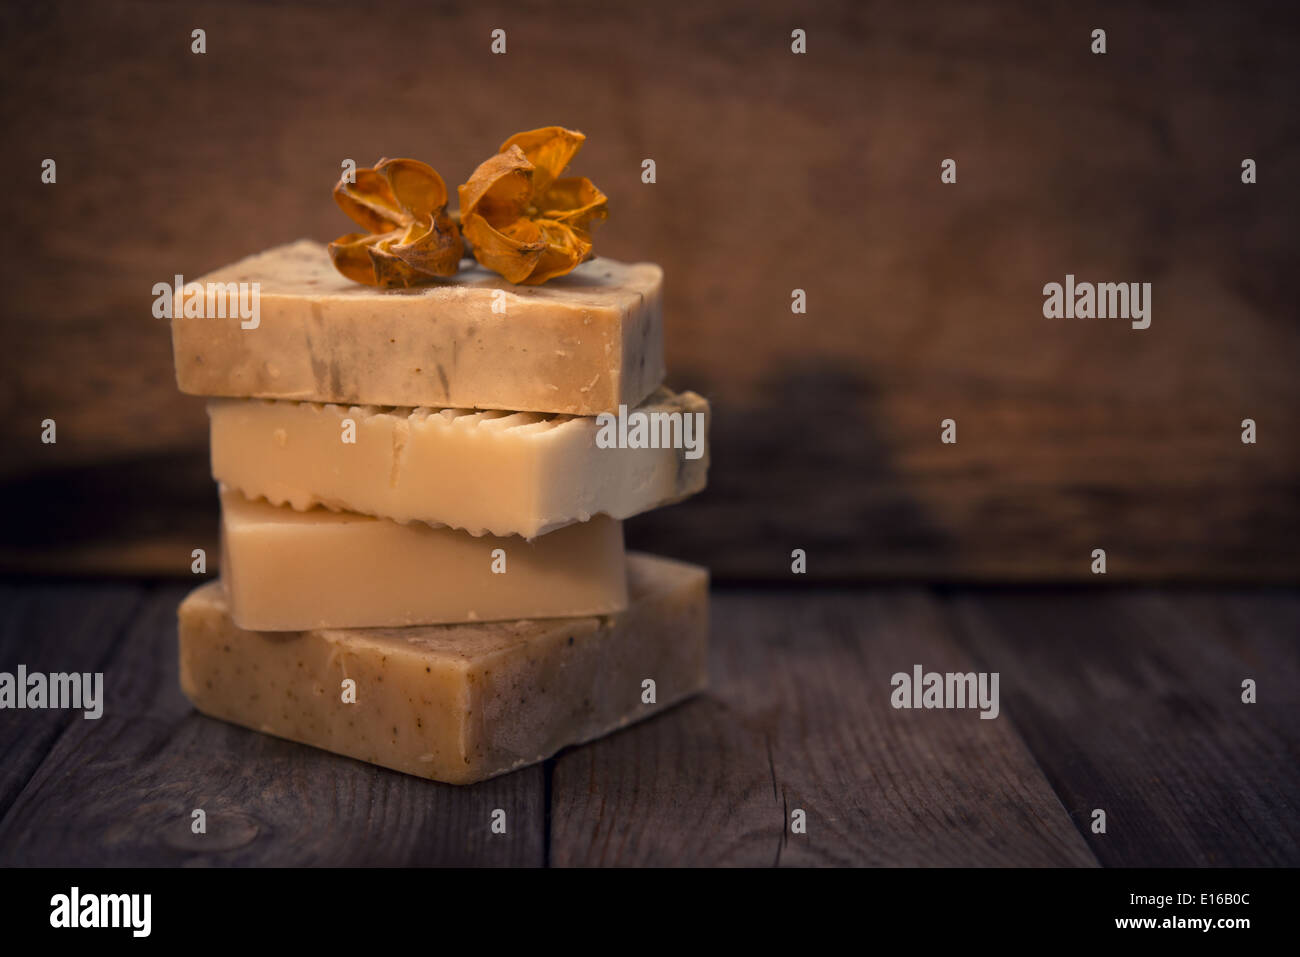 Handmade vegan soap in low light ambient setting with blank copy space. - Stock Image